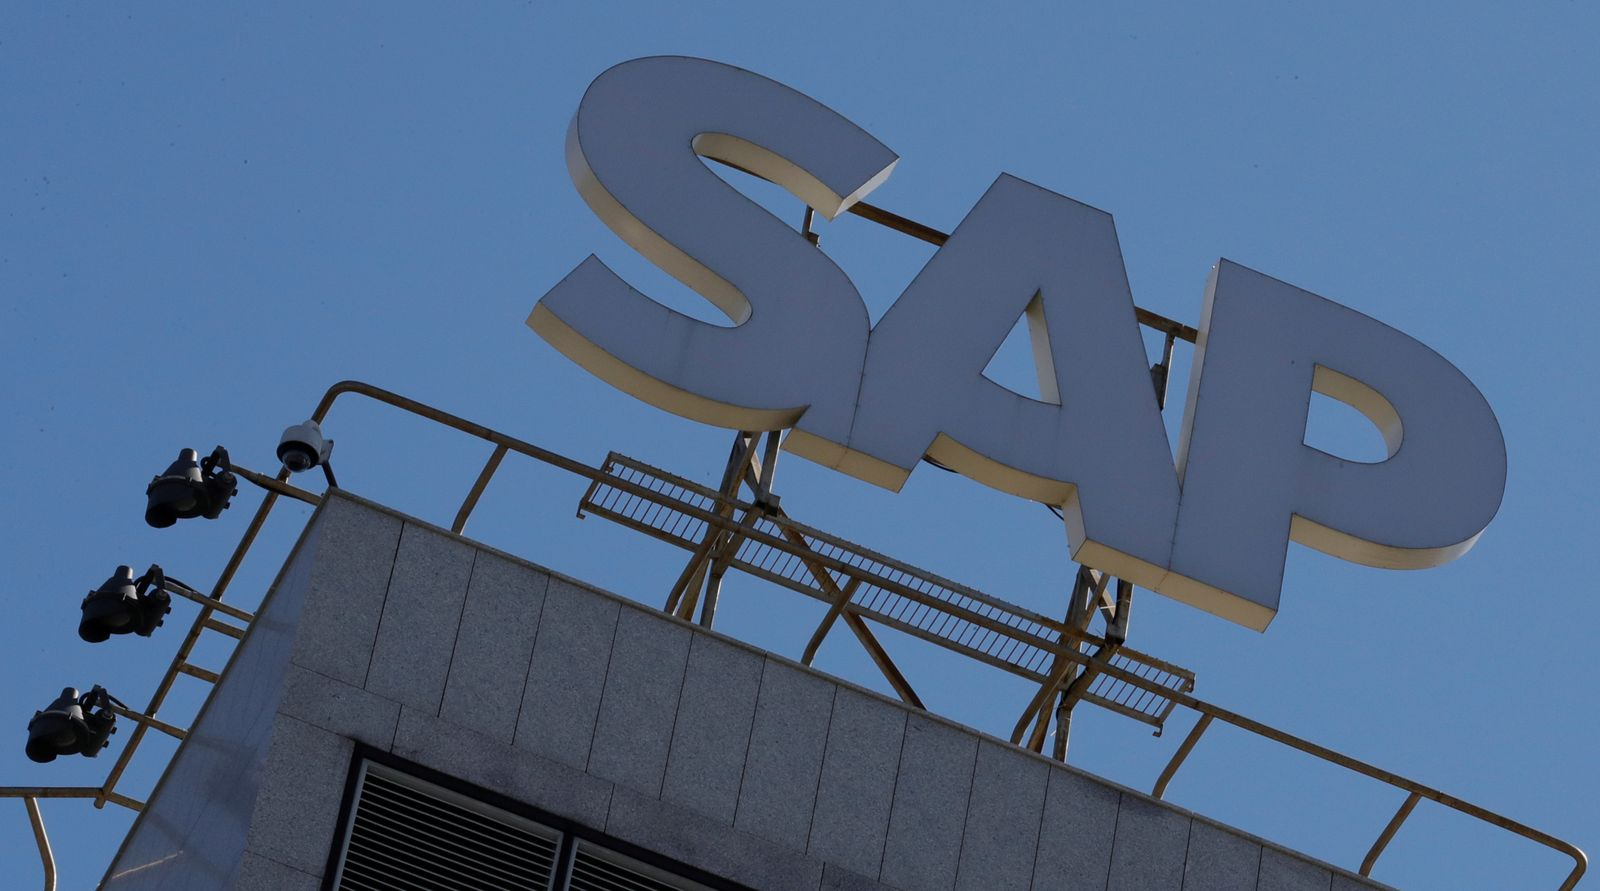 FILE PHOTO: A view shows a sign with the logo of SAP software company on an office building in Moscow